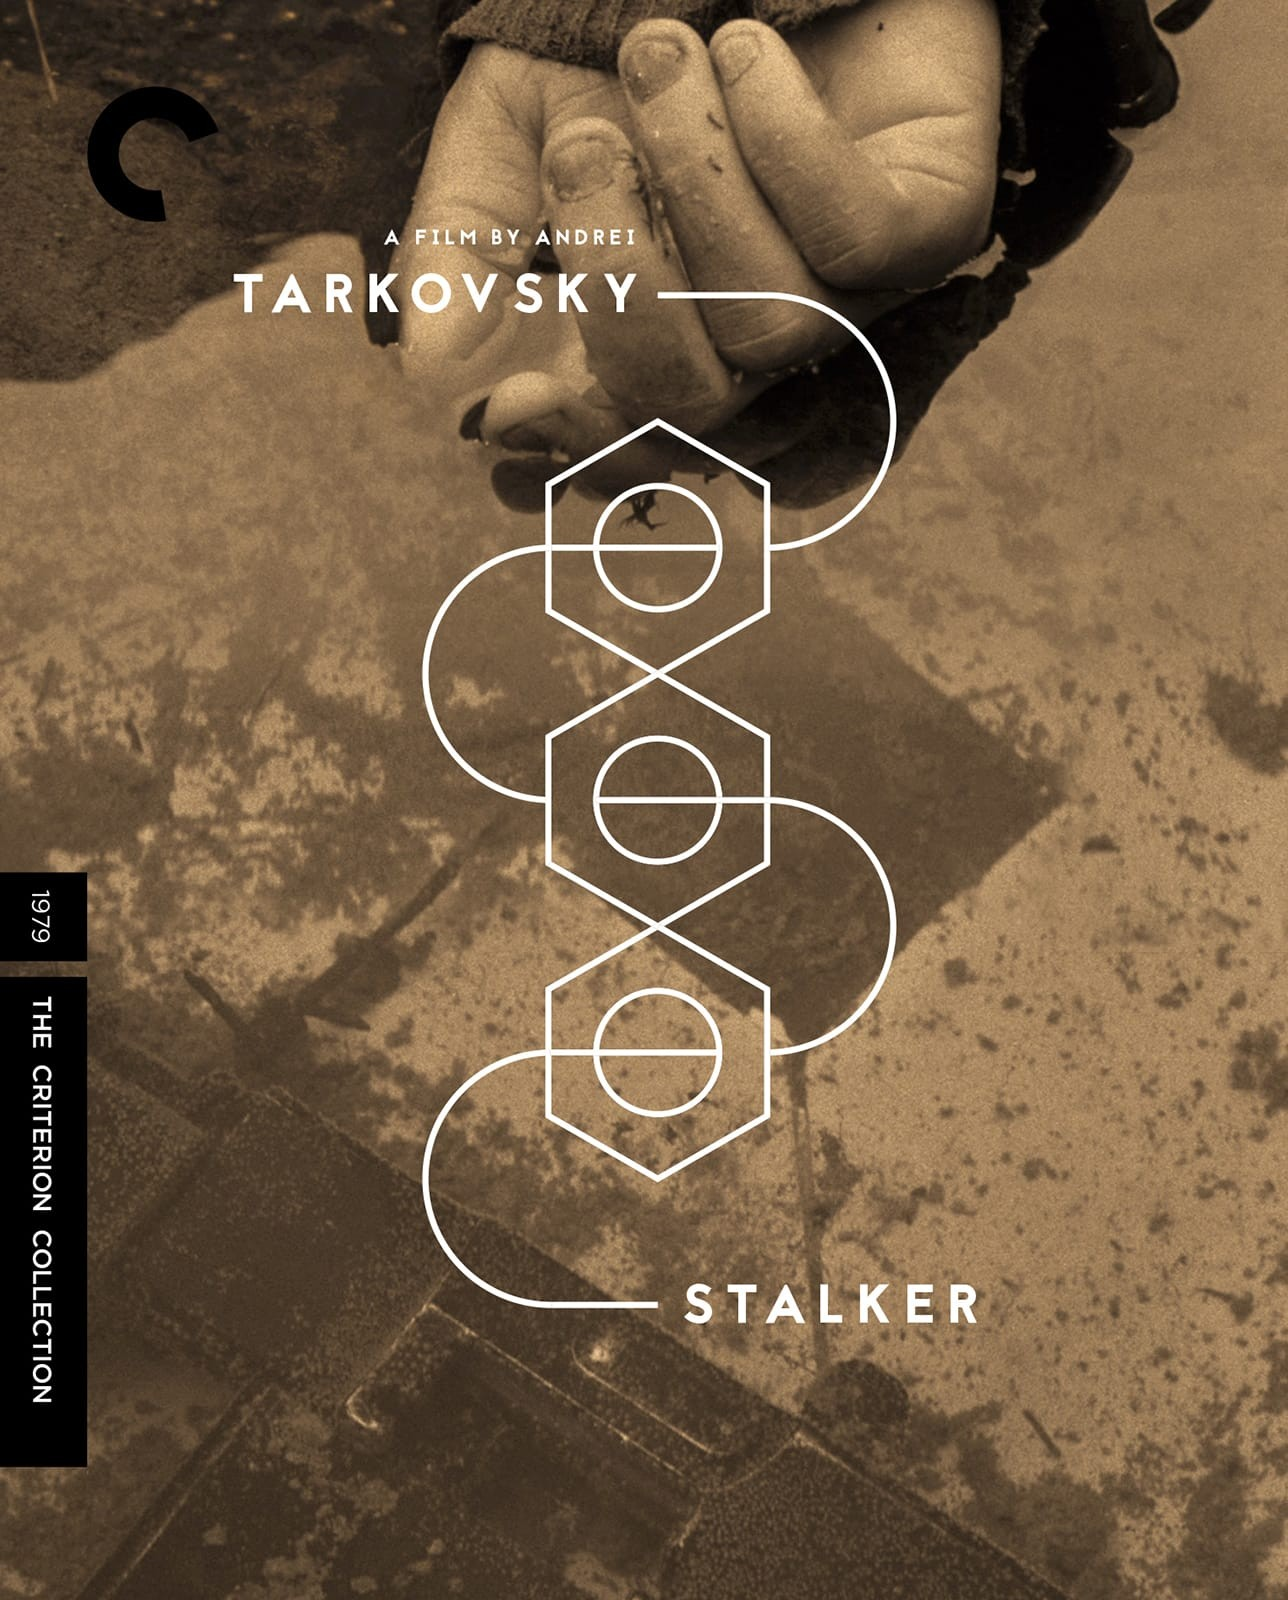 Stalker 1979 The Criterion Collection